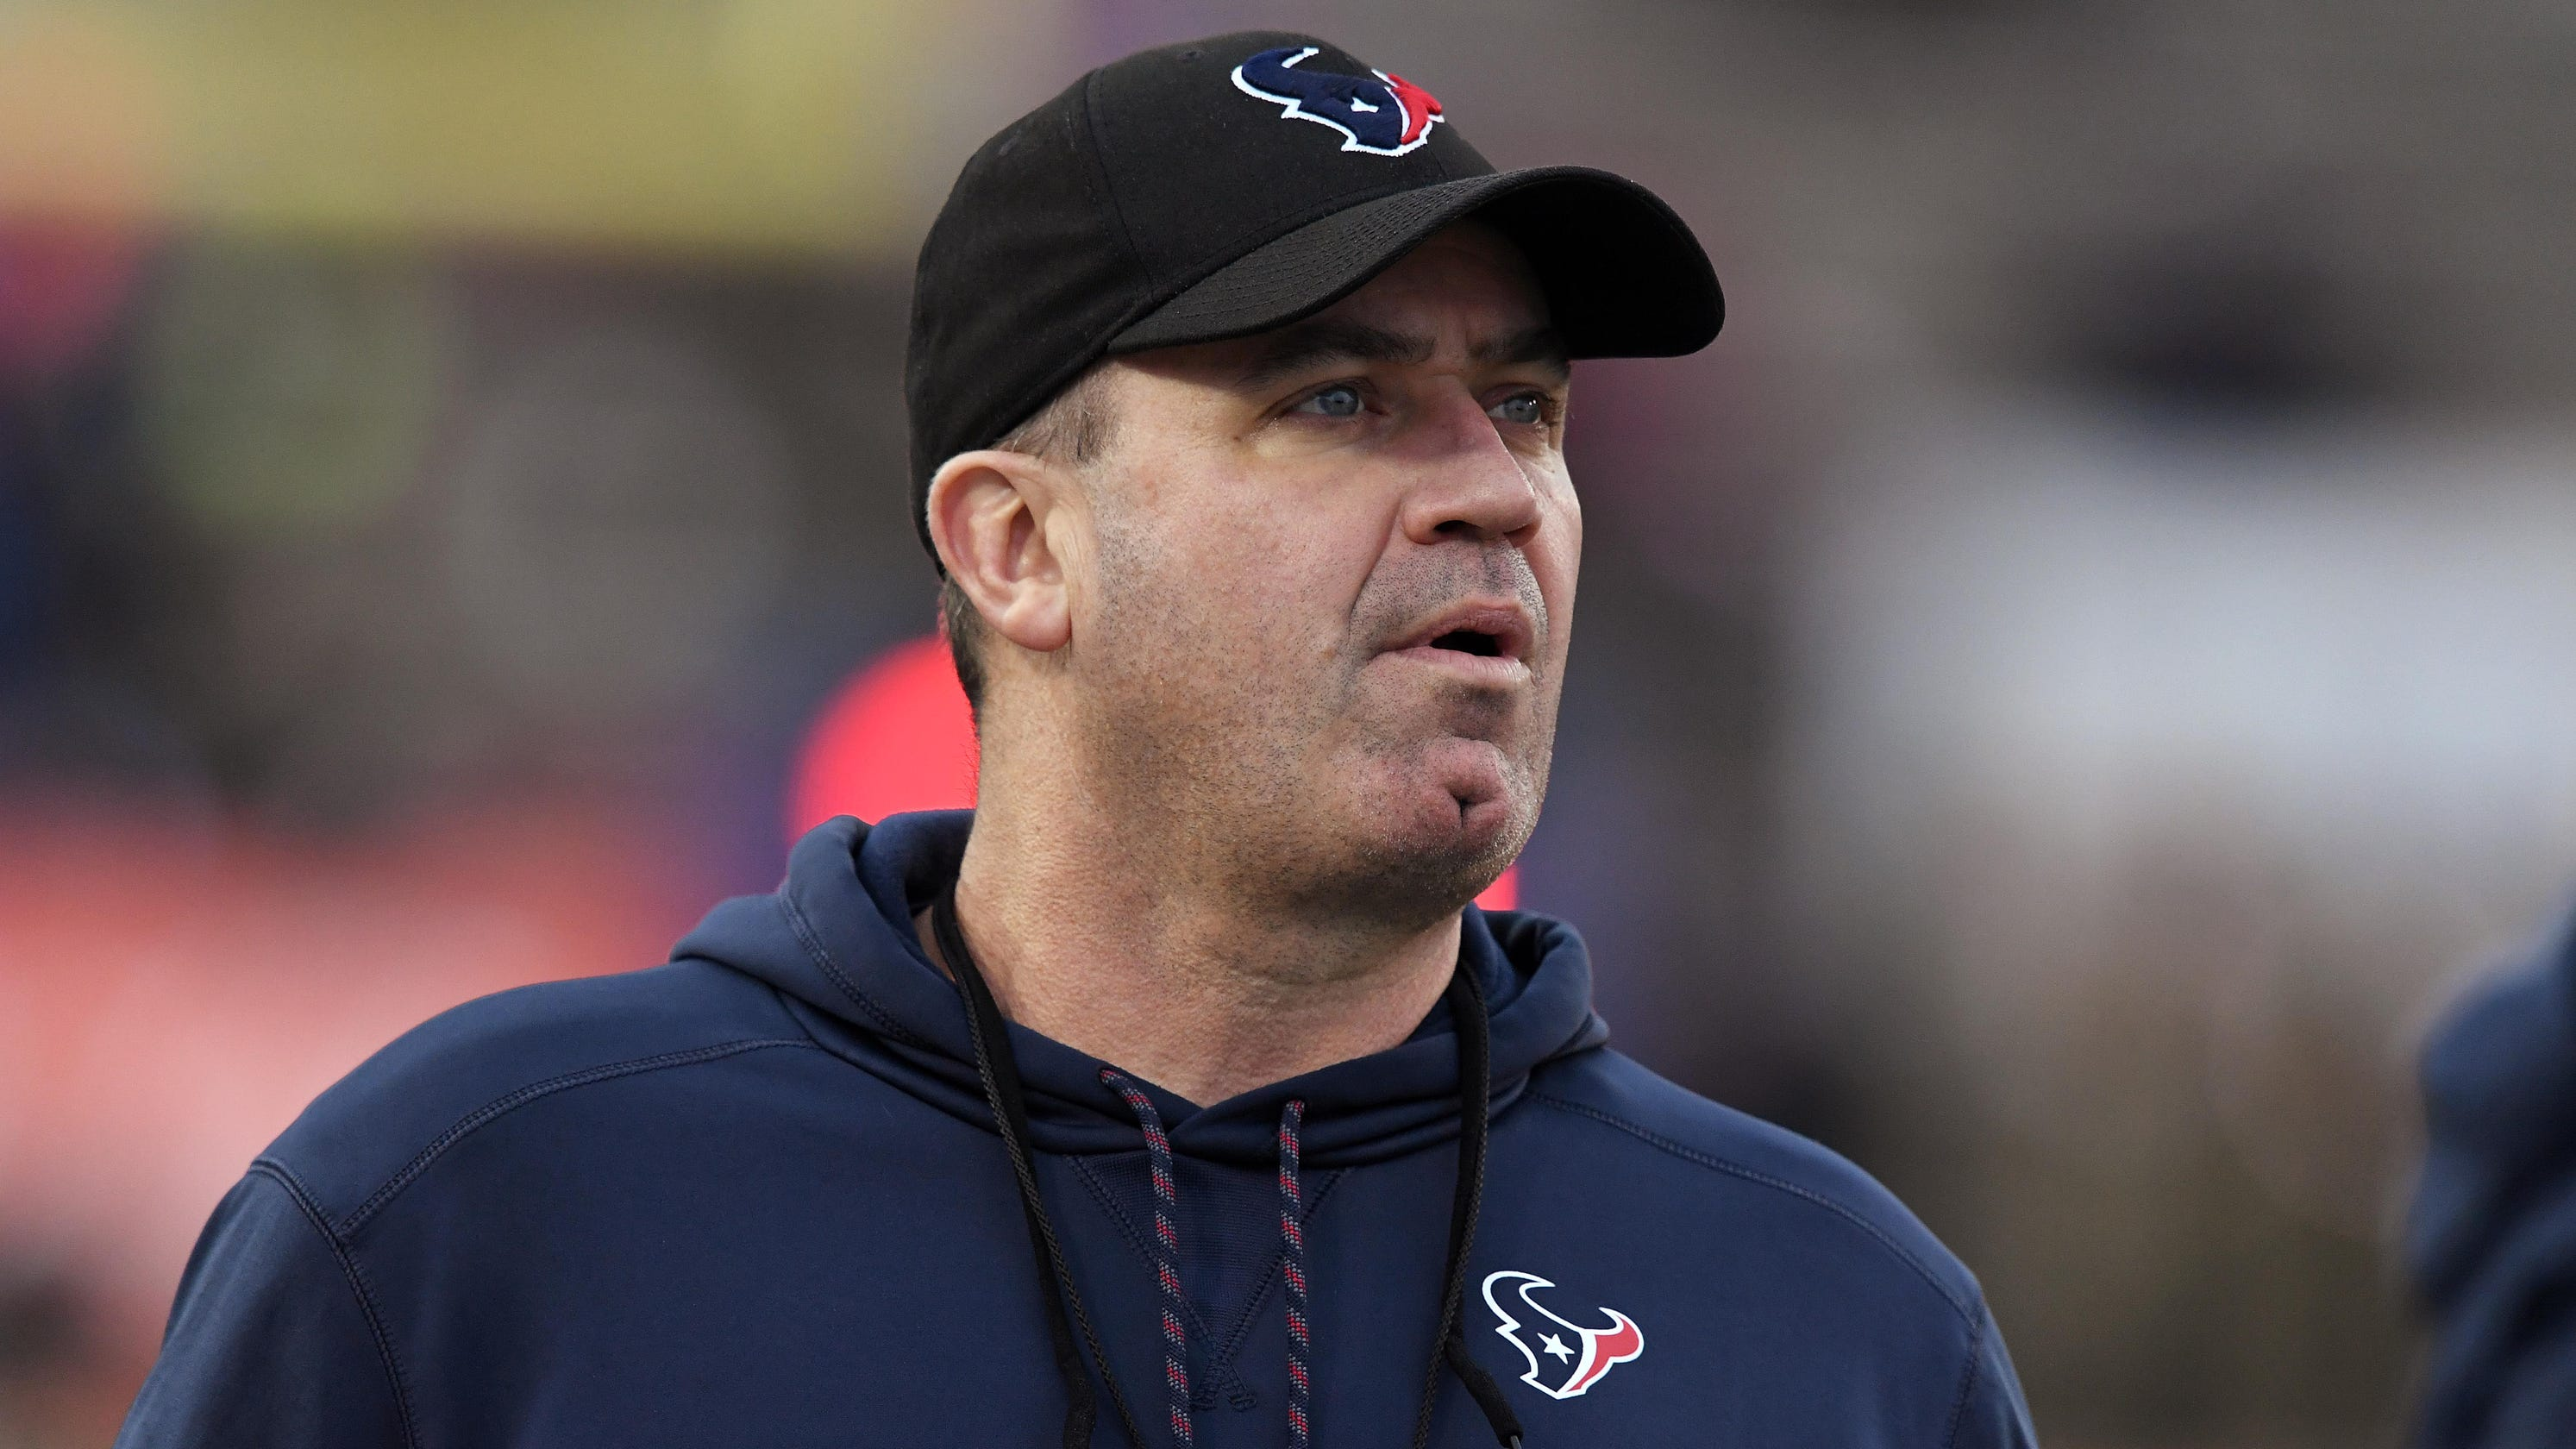 Texans coach Bill O Brien rips superintendent for racist remark on QB Deshaun  Watson a1d714da3